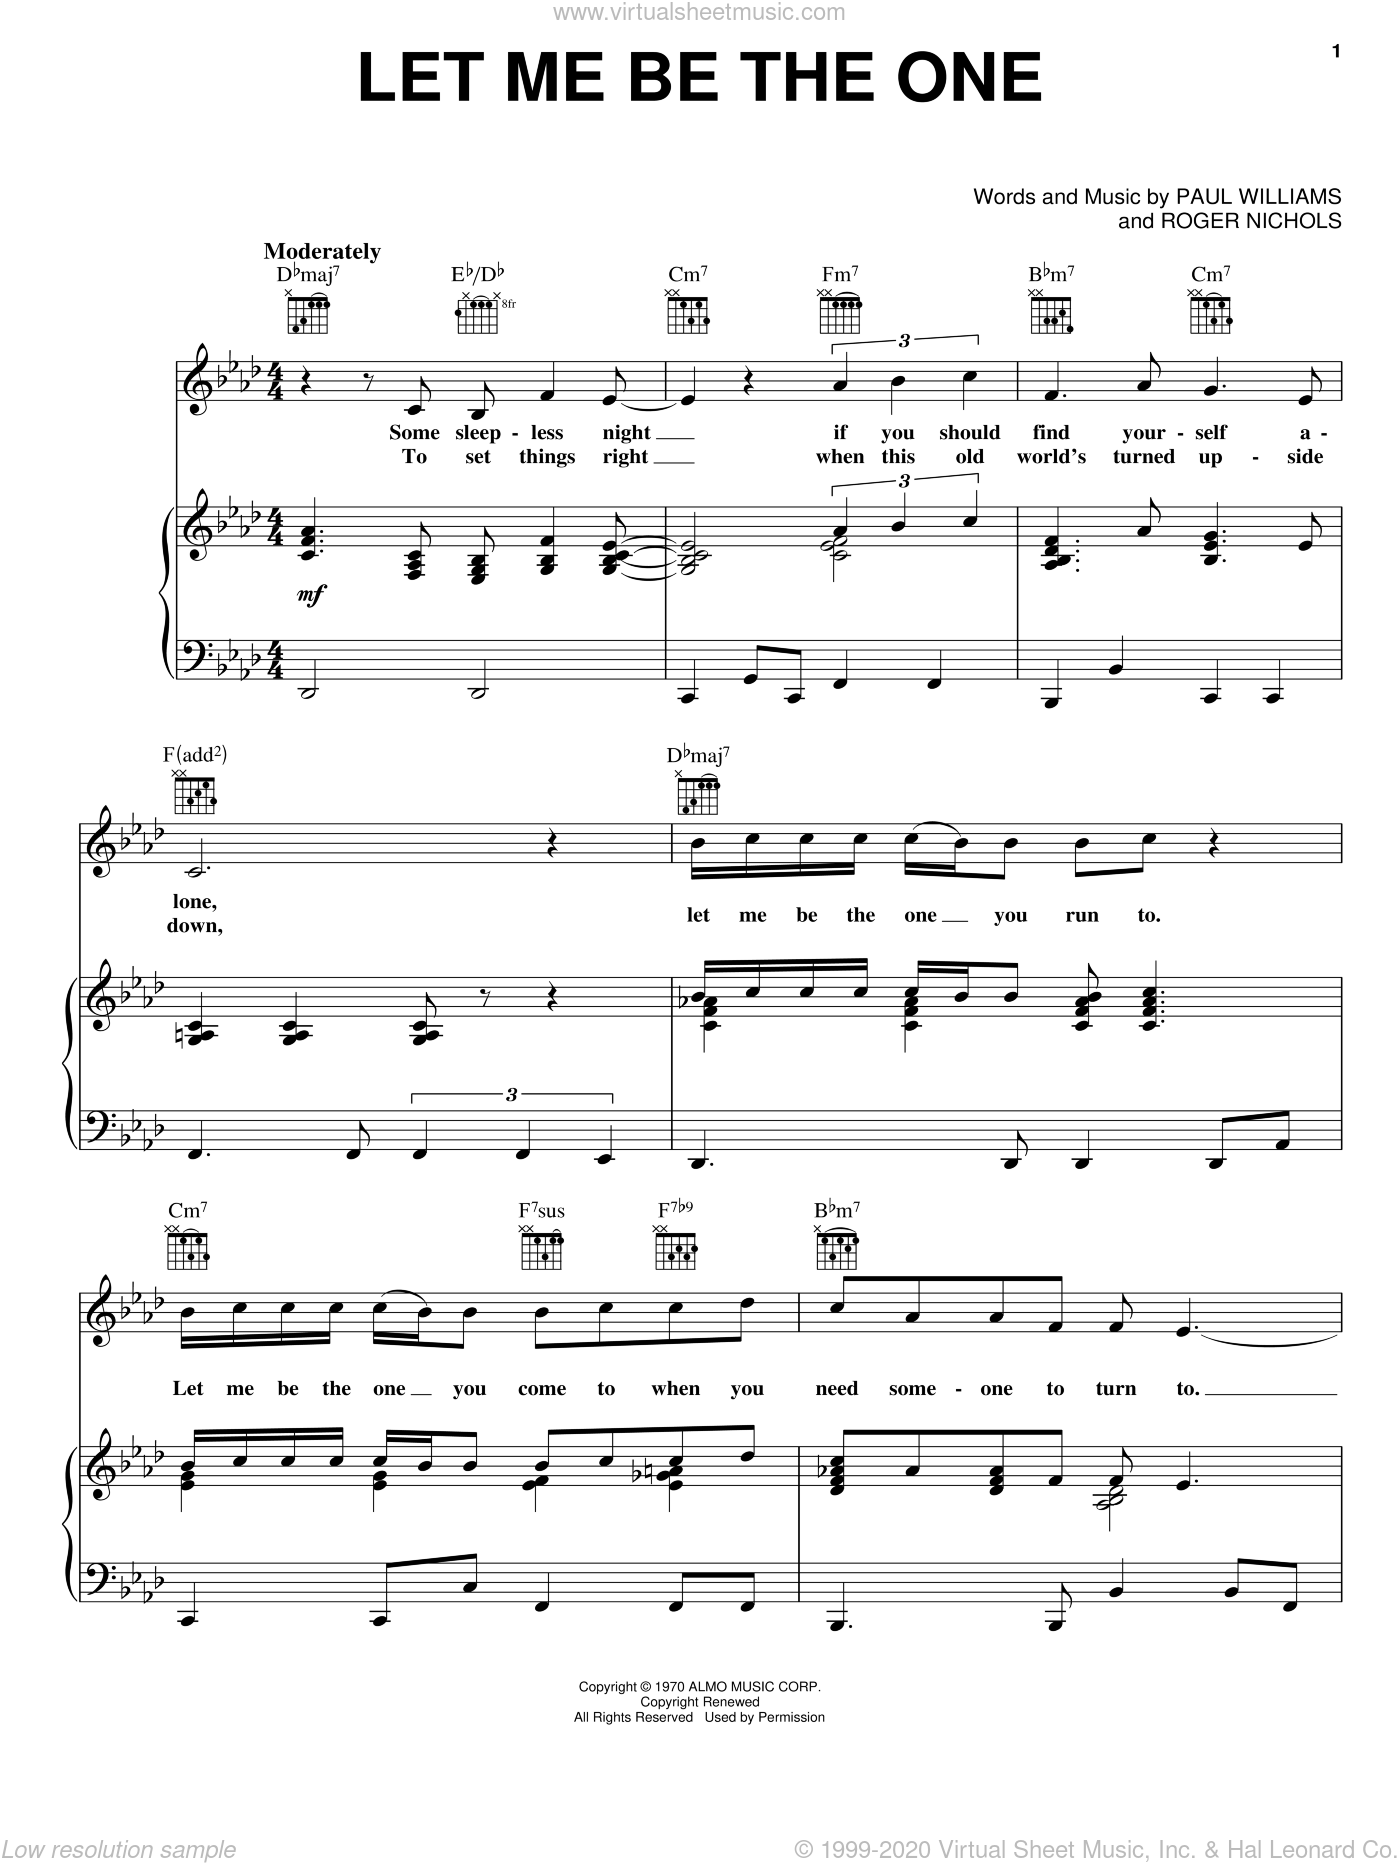 Let Me Be The One sheet music for voice, piano or guitar by Roger Nichols